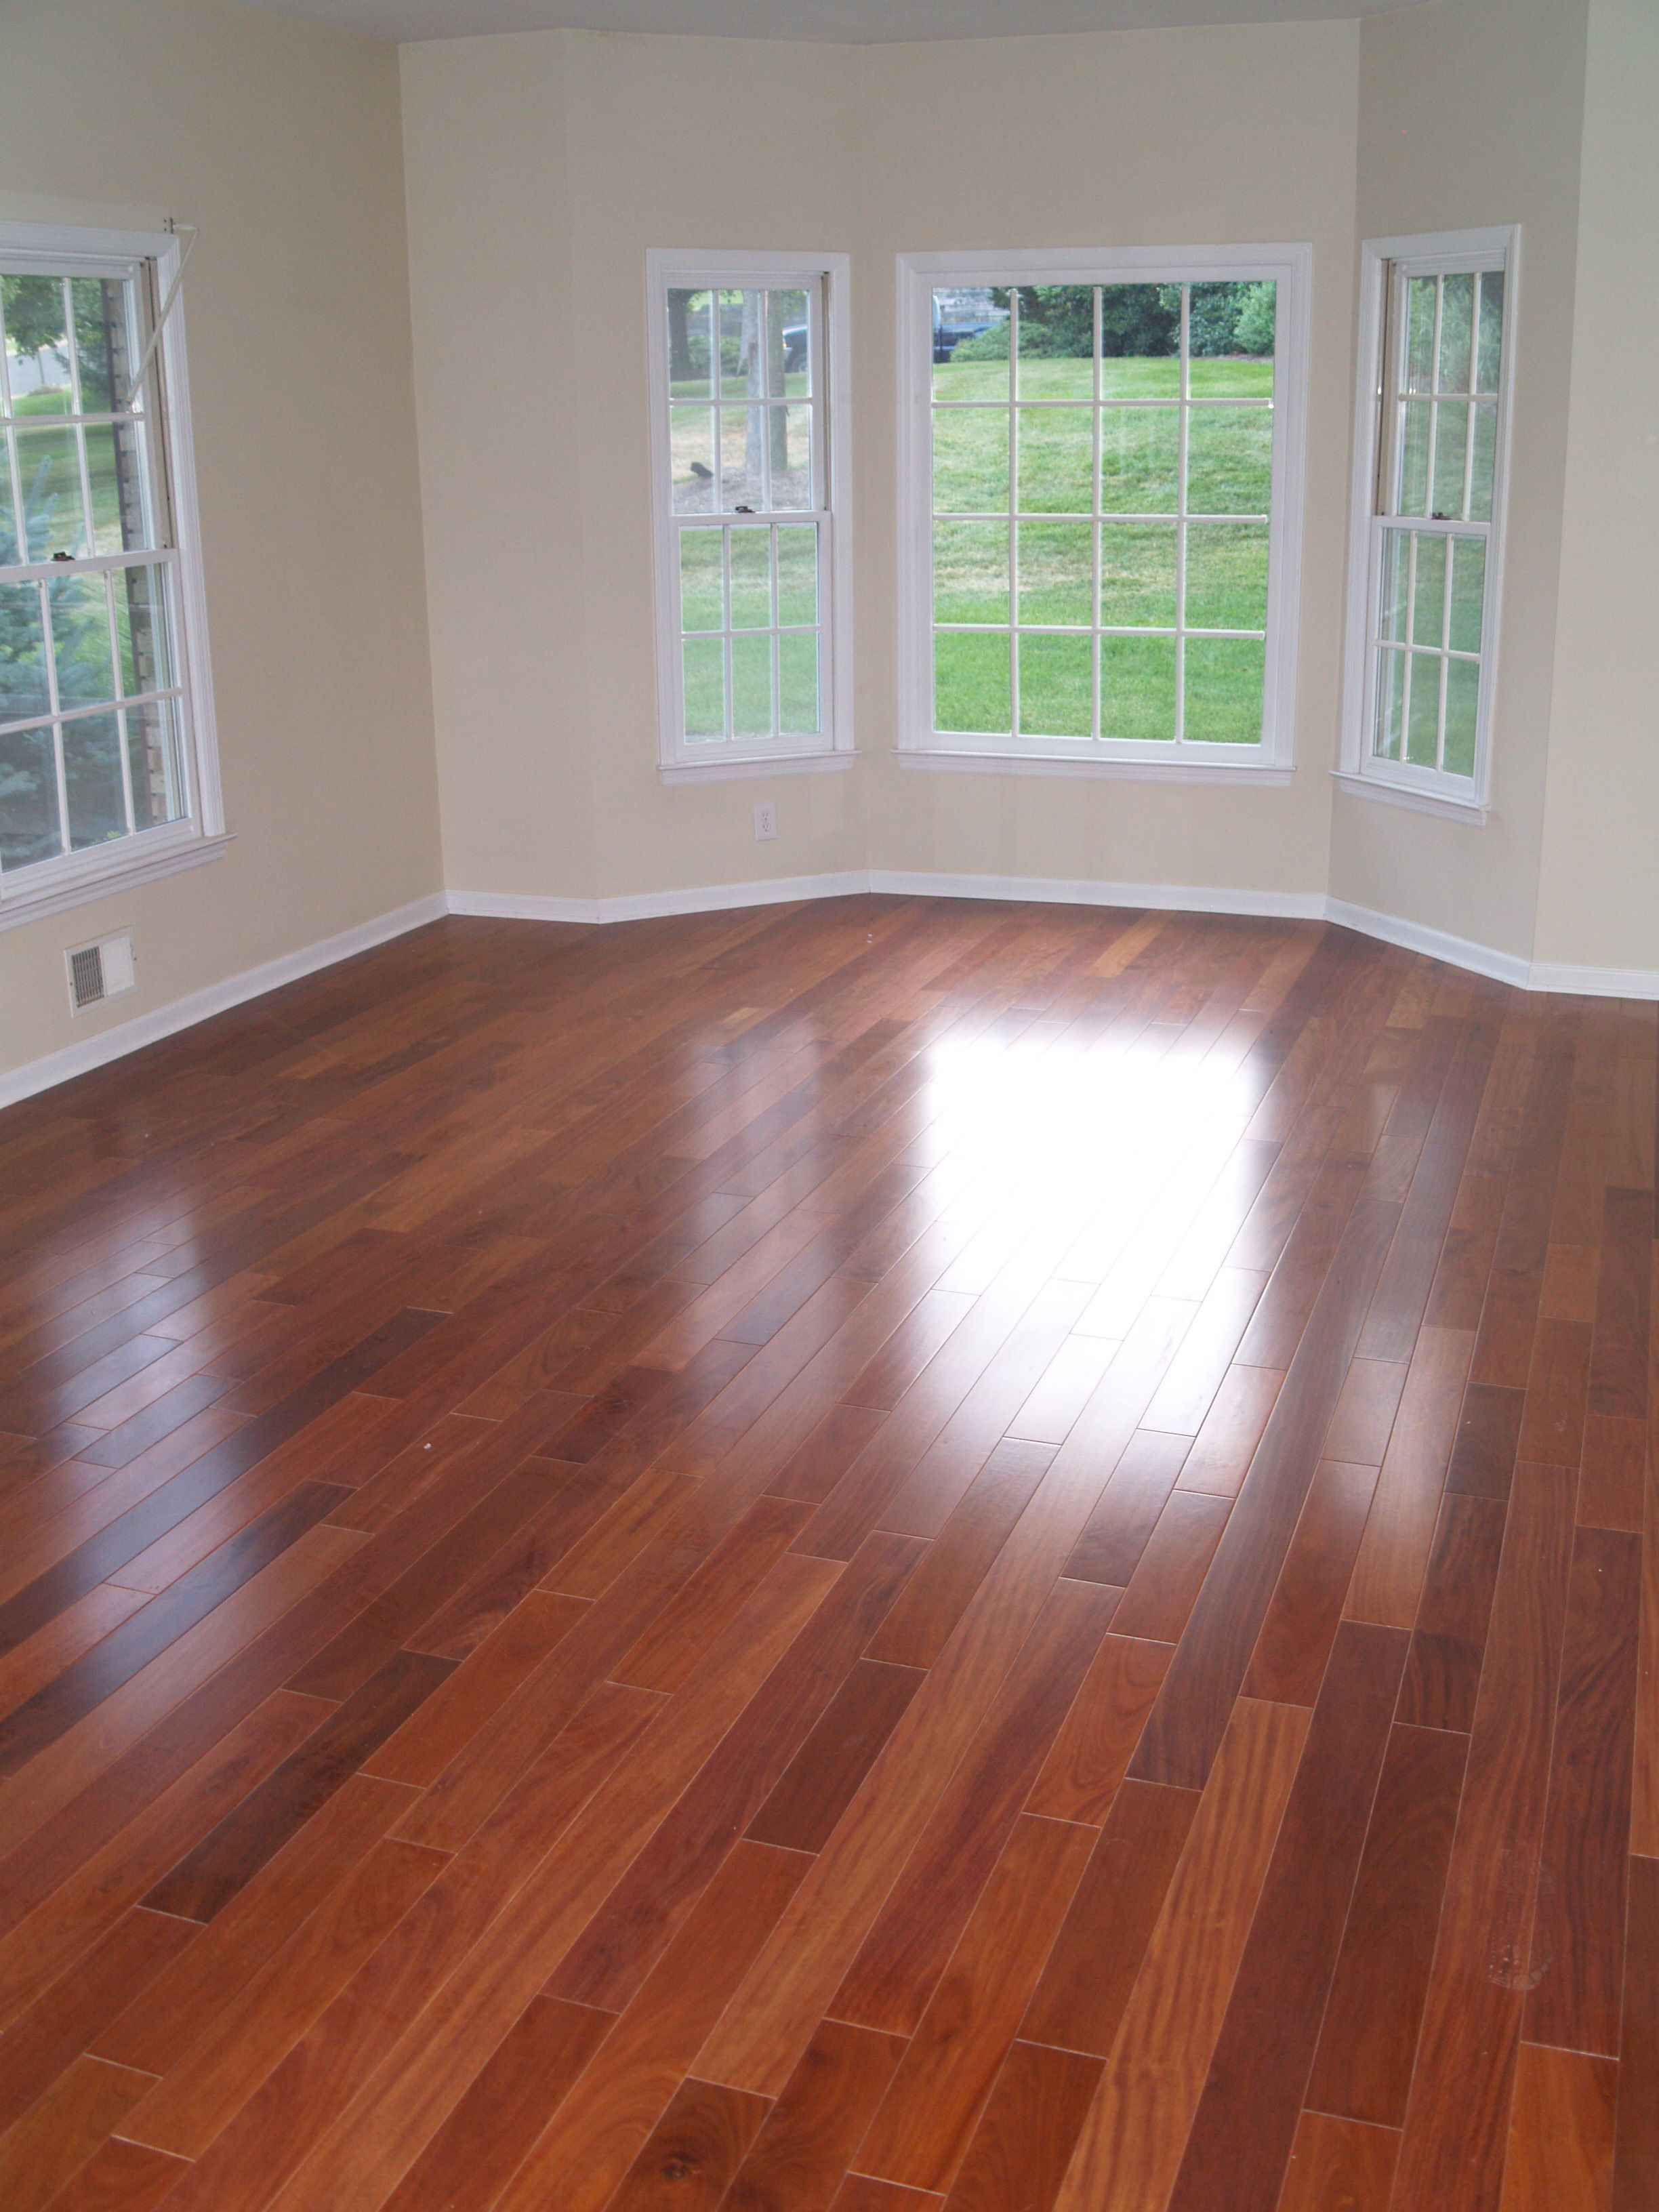 Solid santos mahogany red cabreuva hardwood flooring for Floors floors floors nj